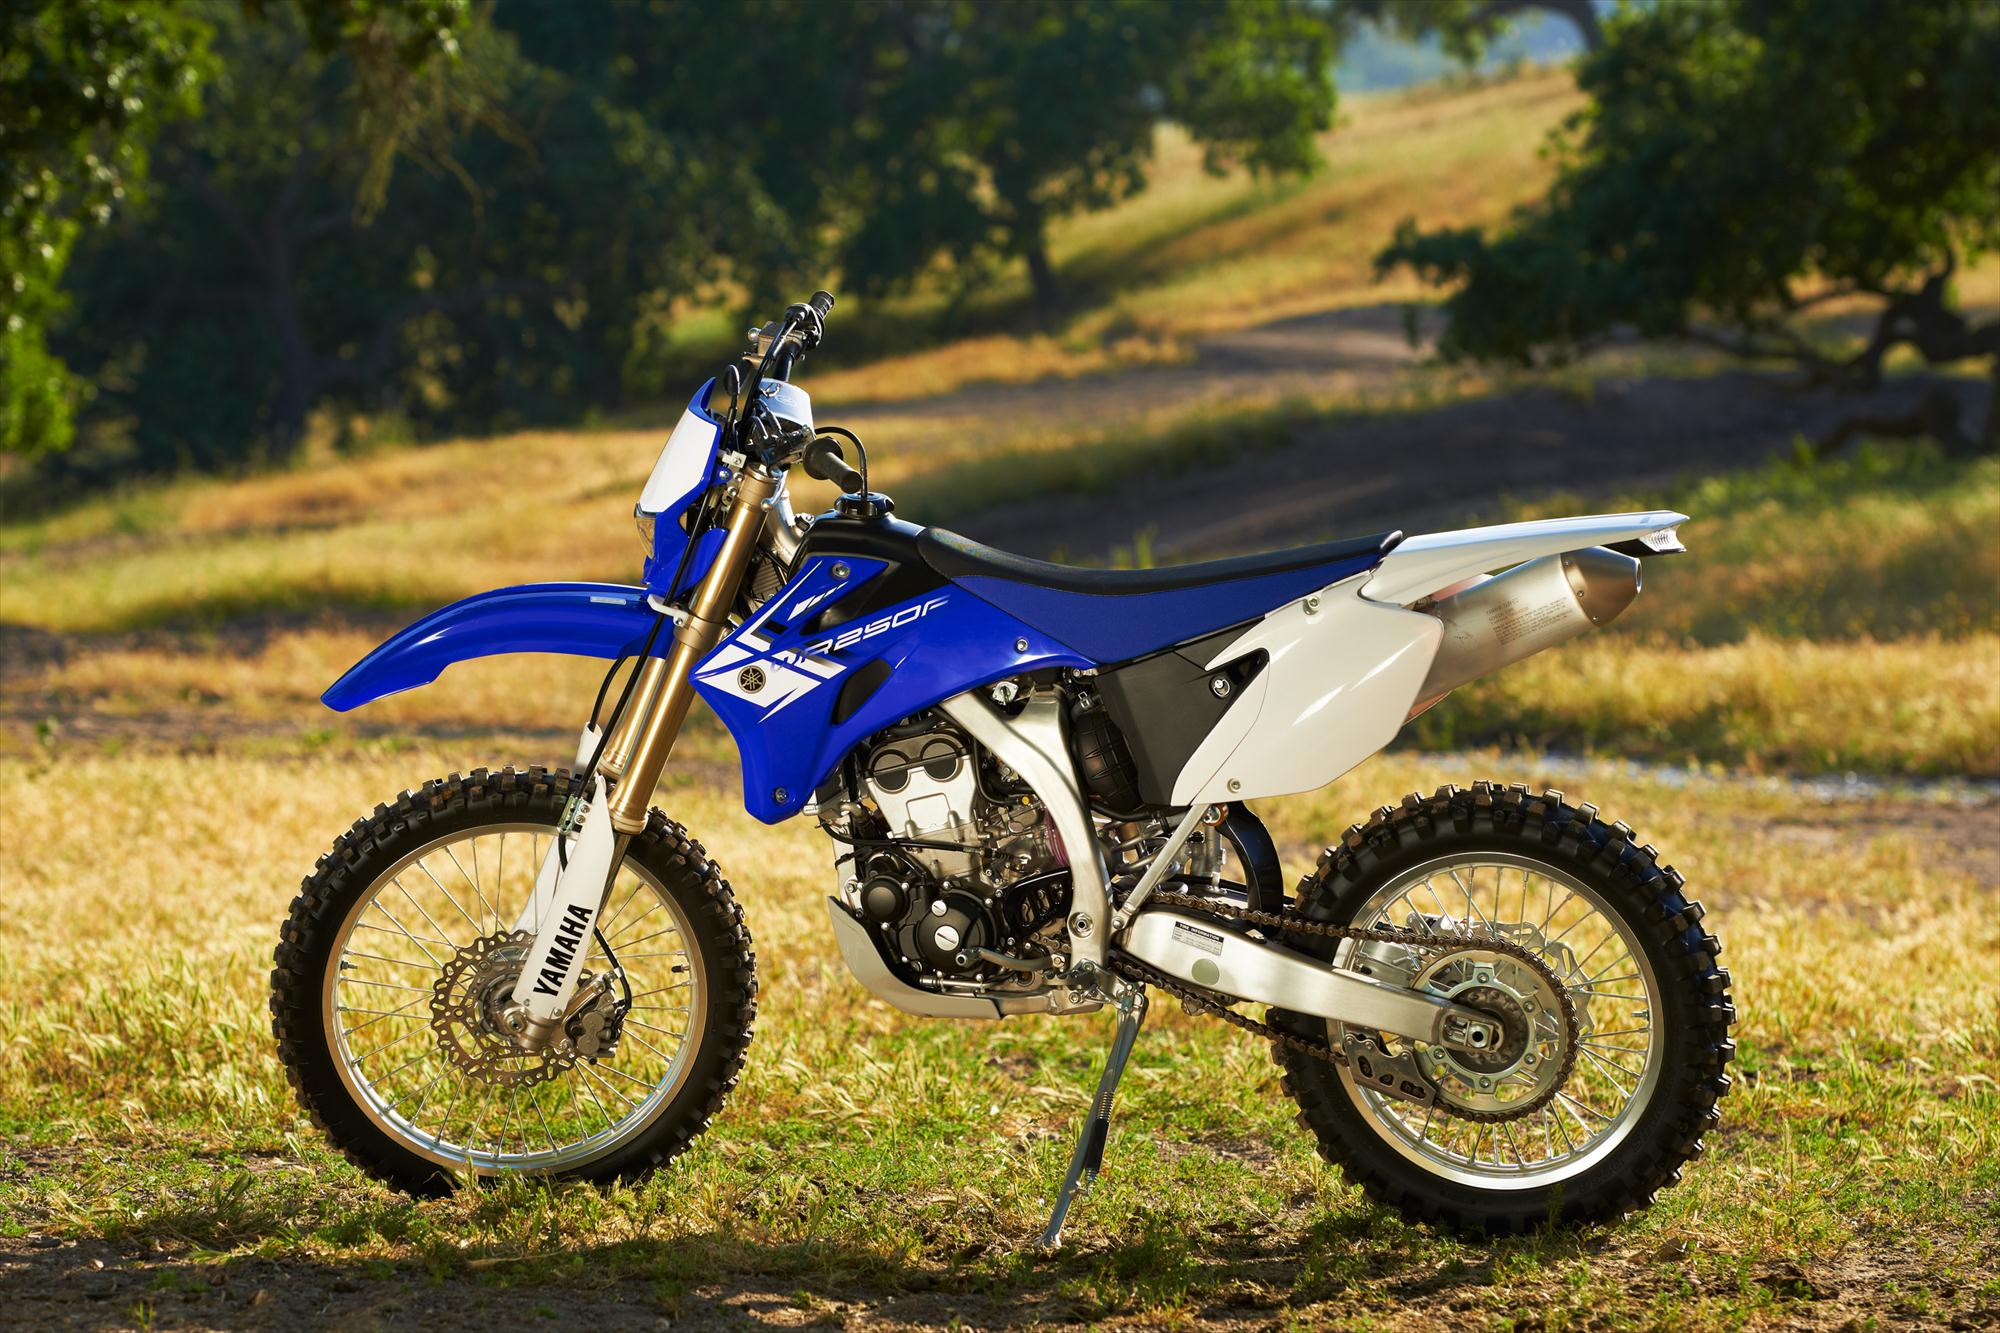 Yamaha Wrf Manual